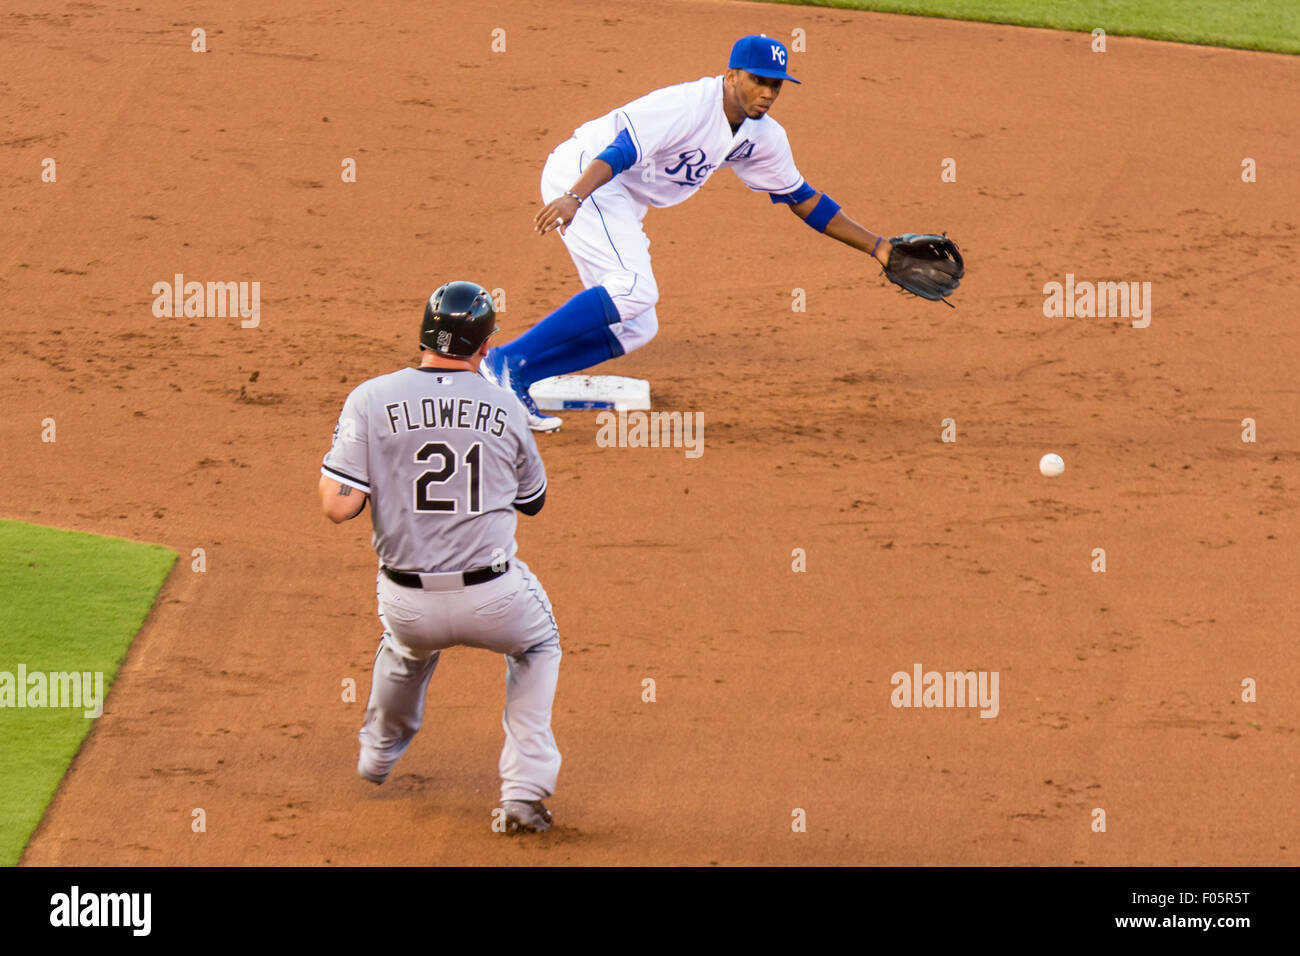 August 07 2015 tyler flowers 21 of the chicago white sox is hit august 07 2015 tyler flowers 21 of the chicago white sox is hit mightylinksfo Choice Image